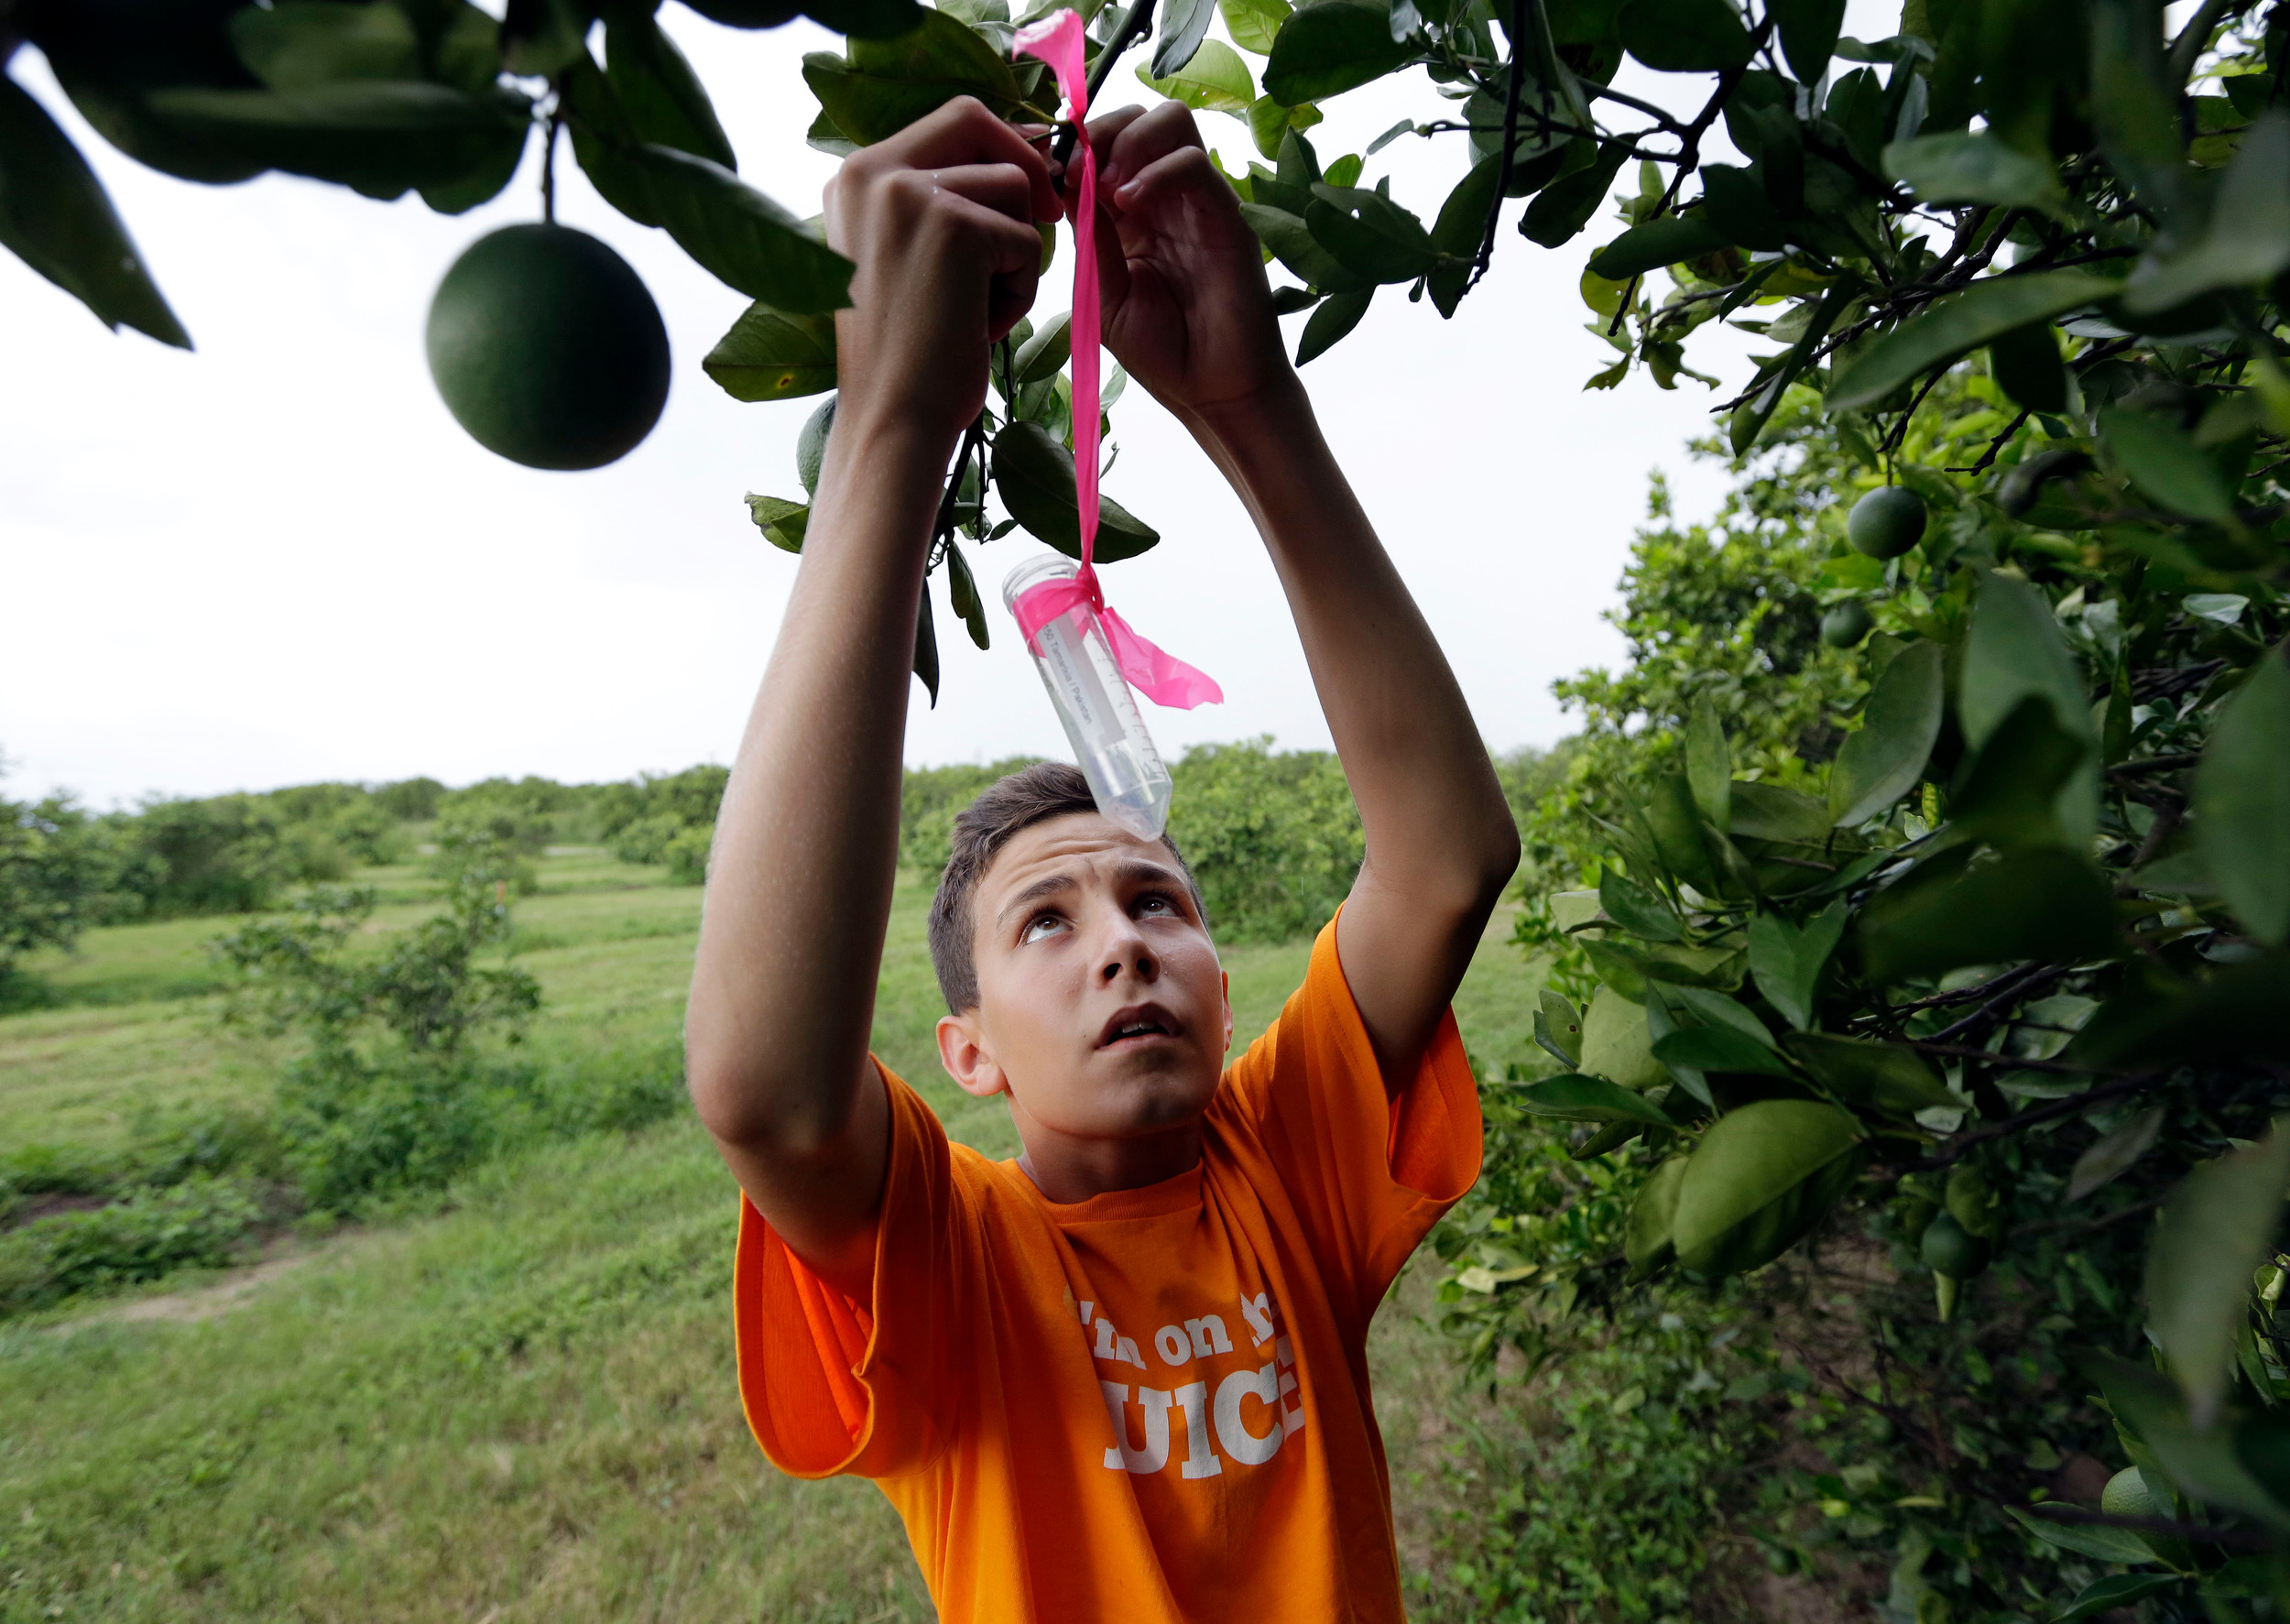 Nick Howell, 13, a member of the McLean family who owns Uncle Matt's organic orange juice company, places a vial   containing the tamarixia wasp July 25 to release in their orange groves in hopes of combating the citrus greening disease in Clermont, Florida.